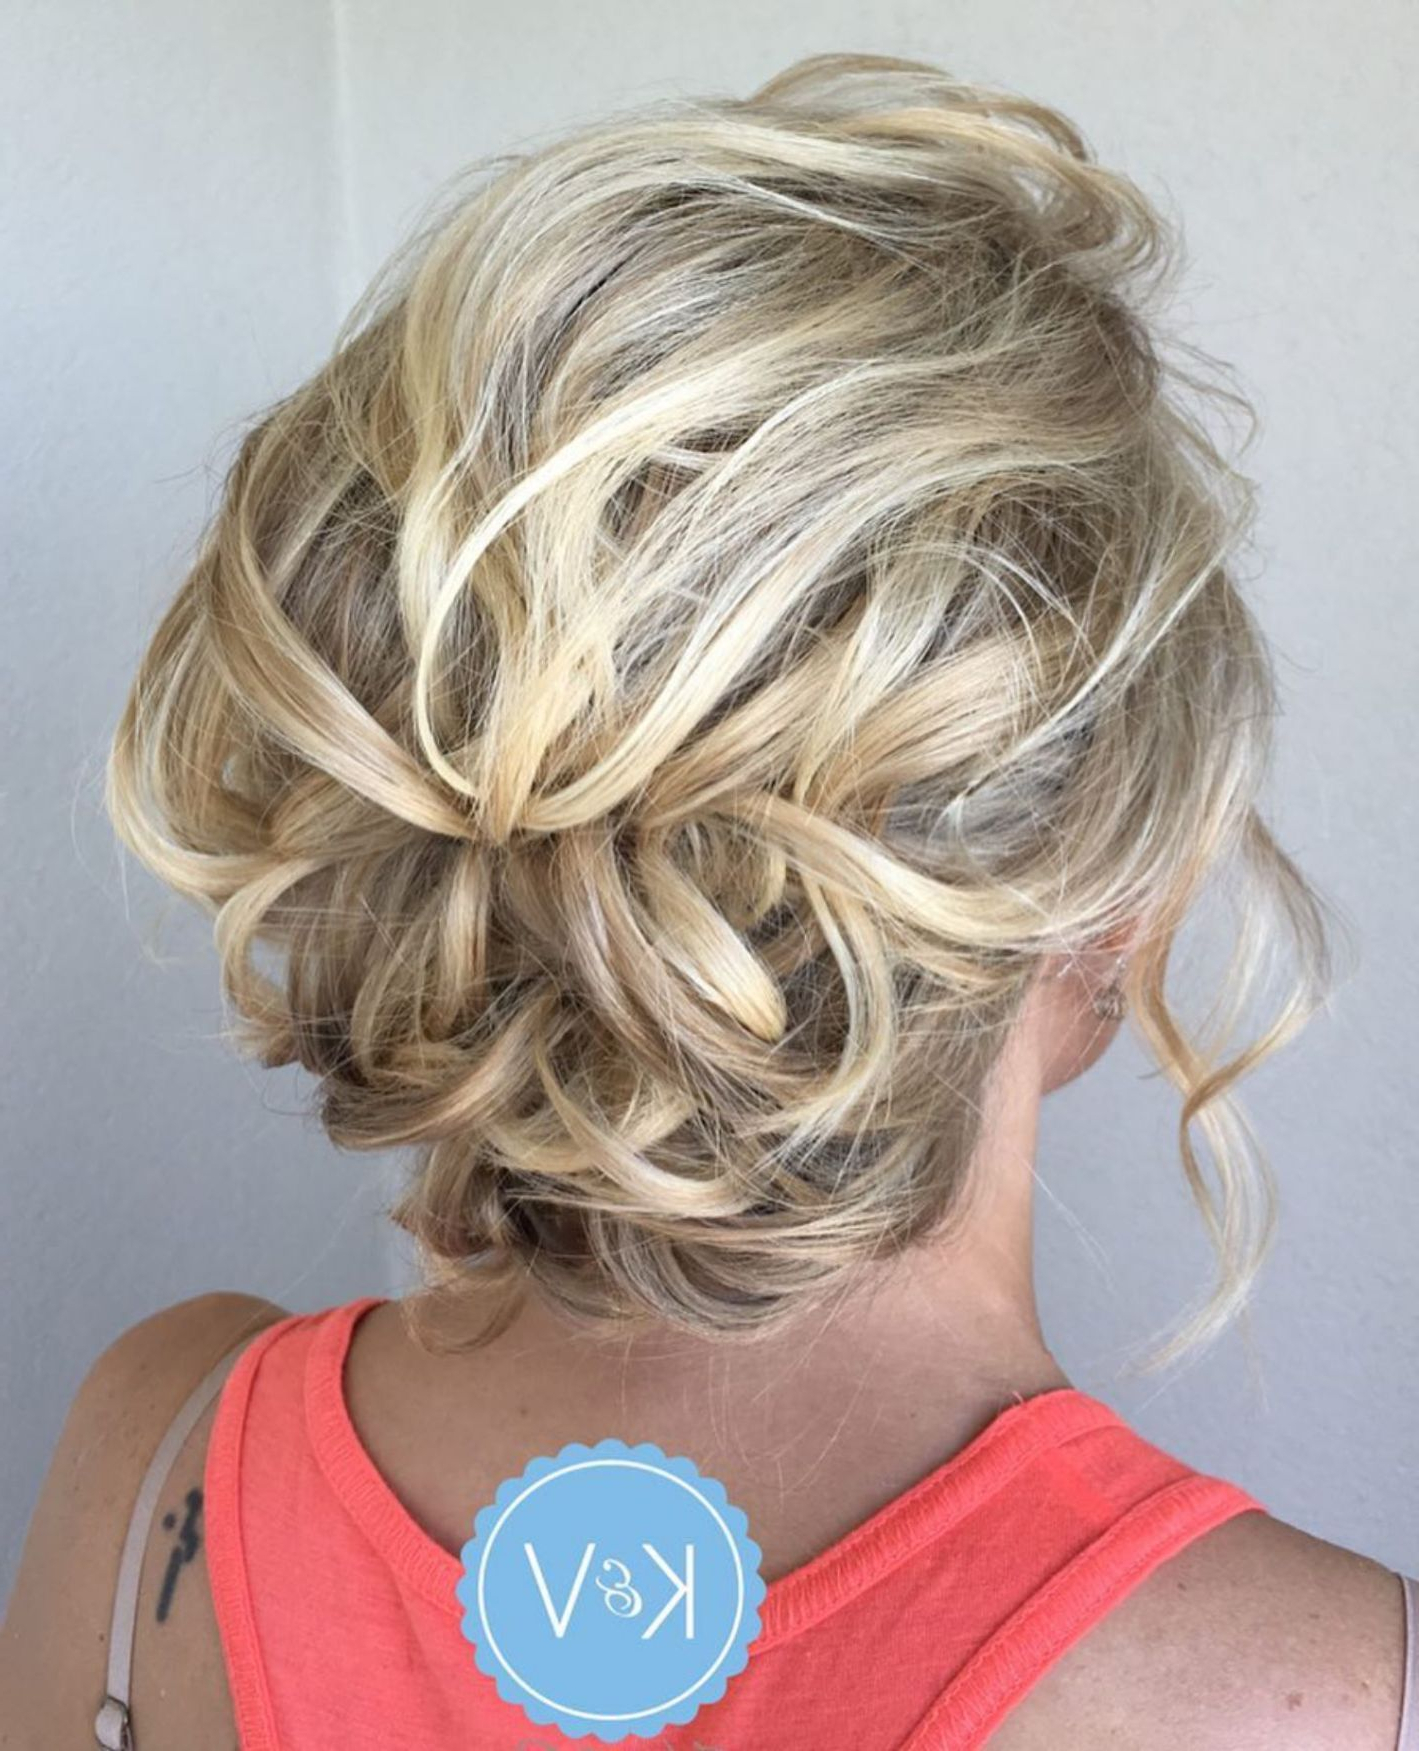 60 Creative Updo Ideas For Short Hair (View 4 of 20)